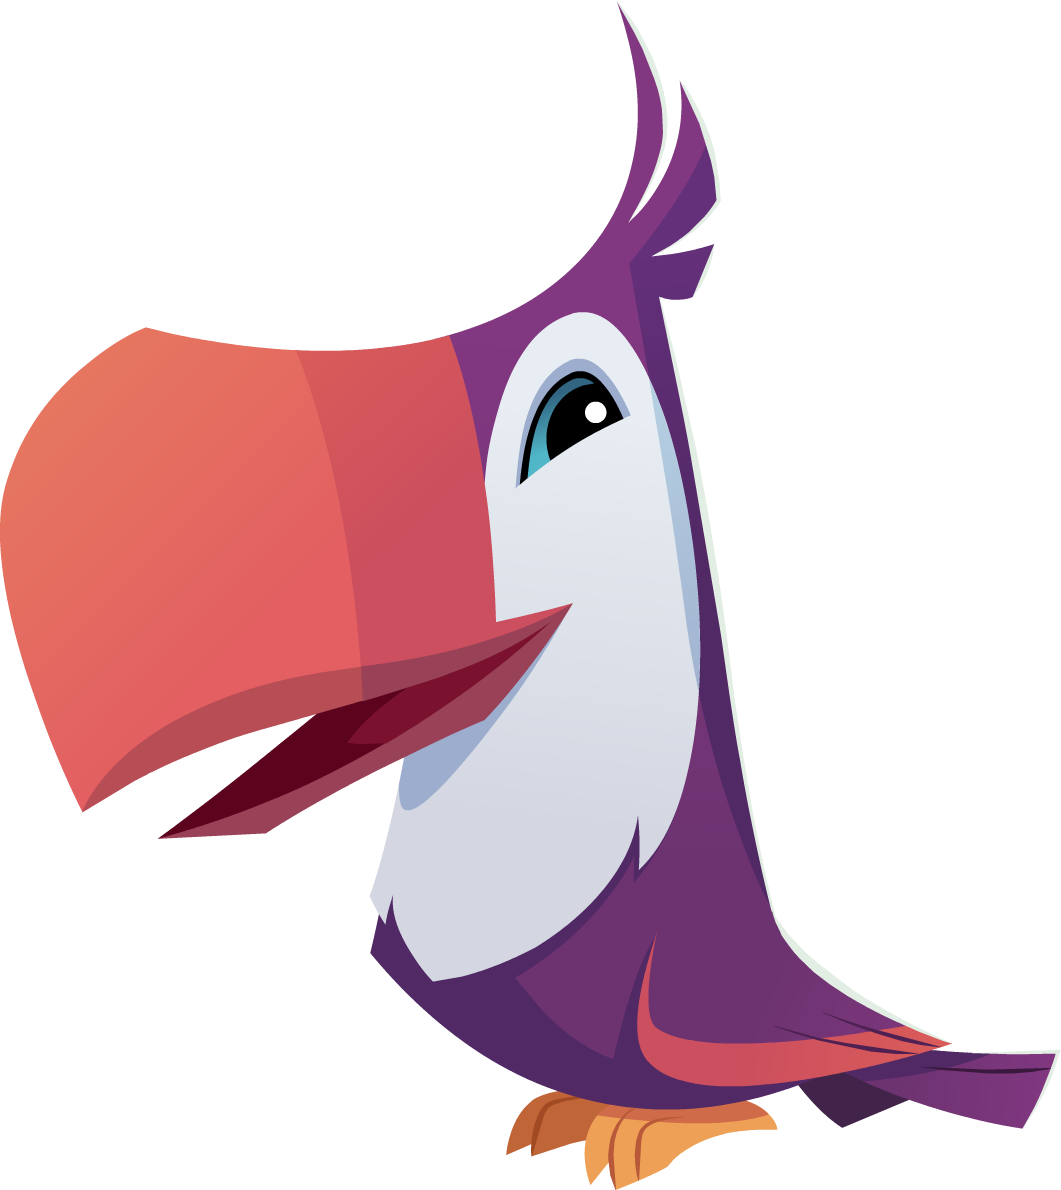 Library of animal jam free librarys png files Clipart Art 2019